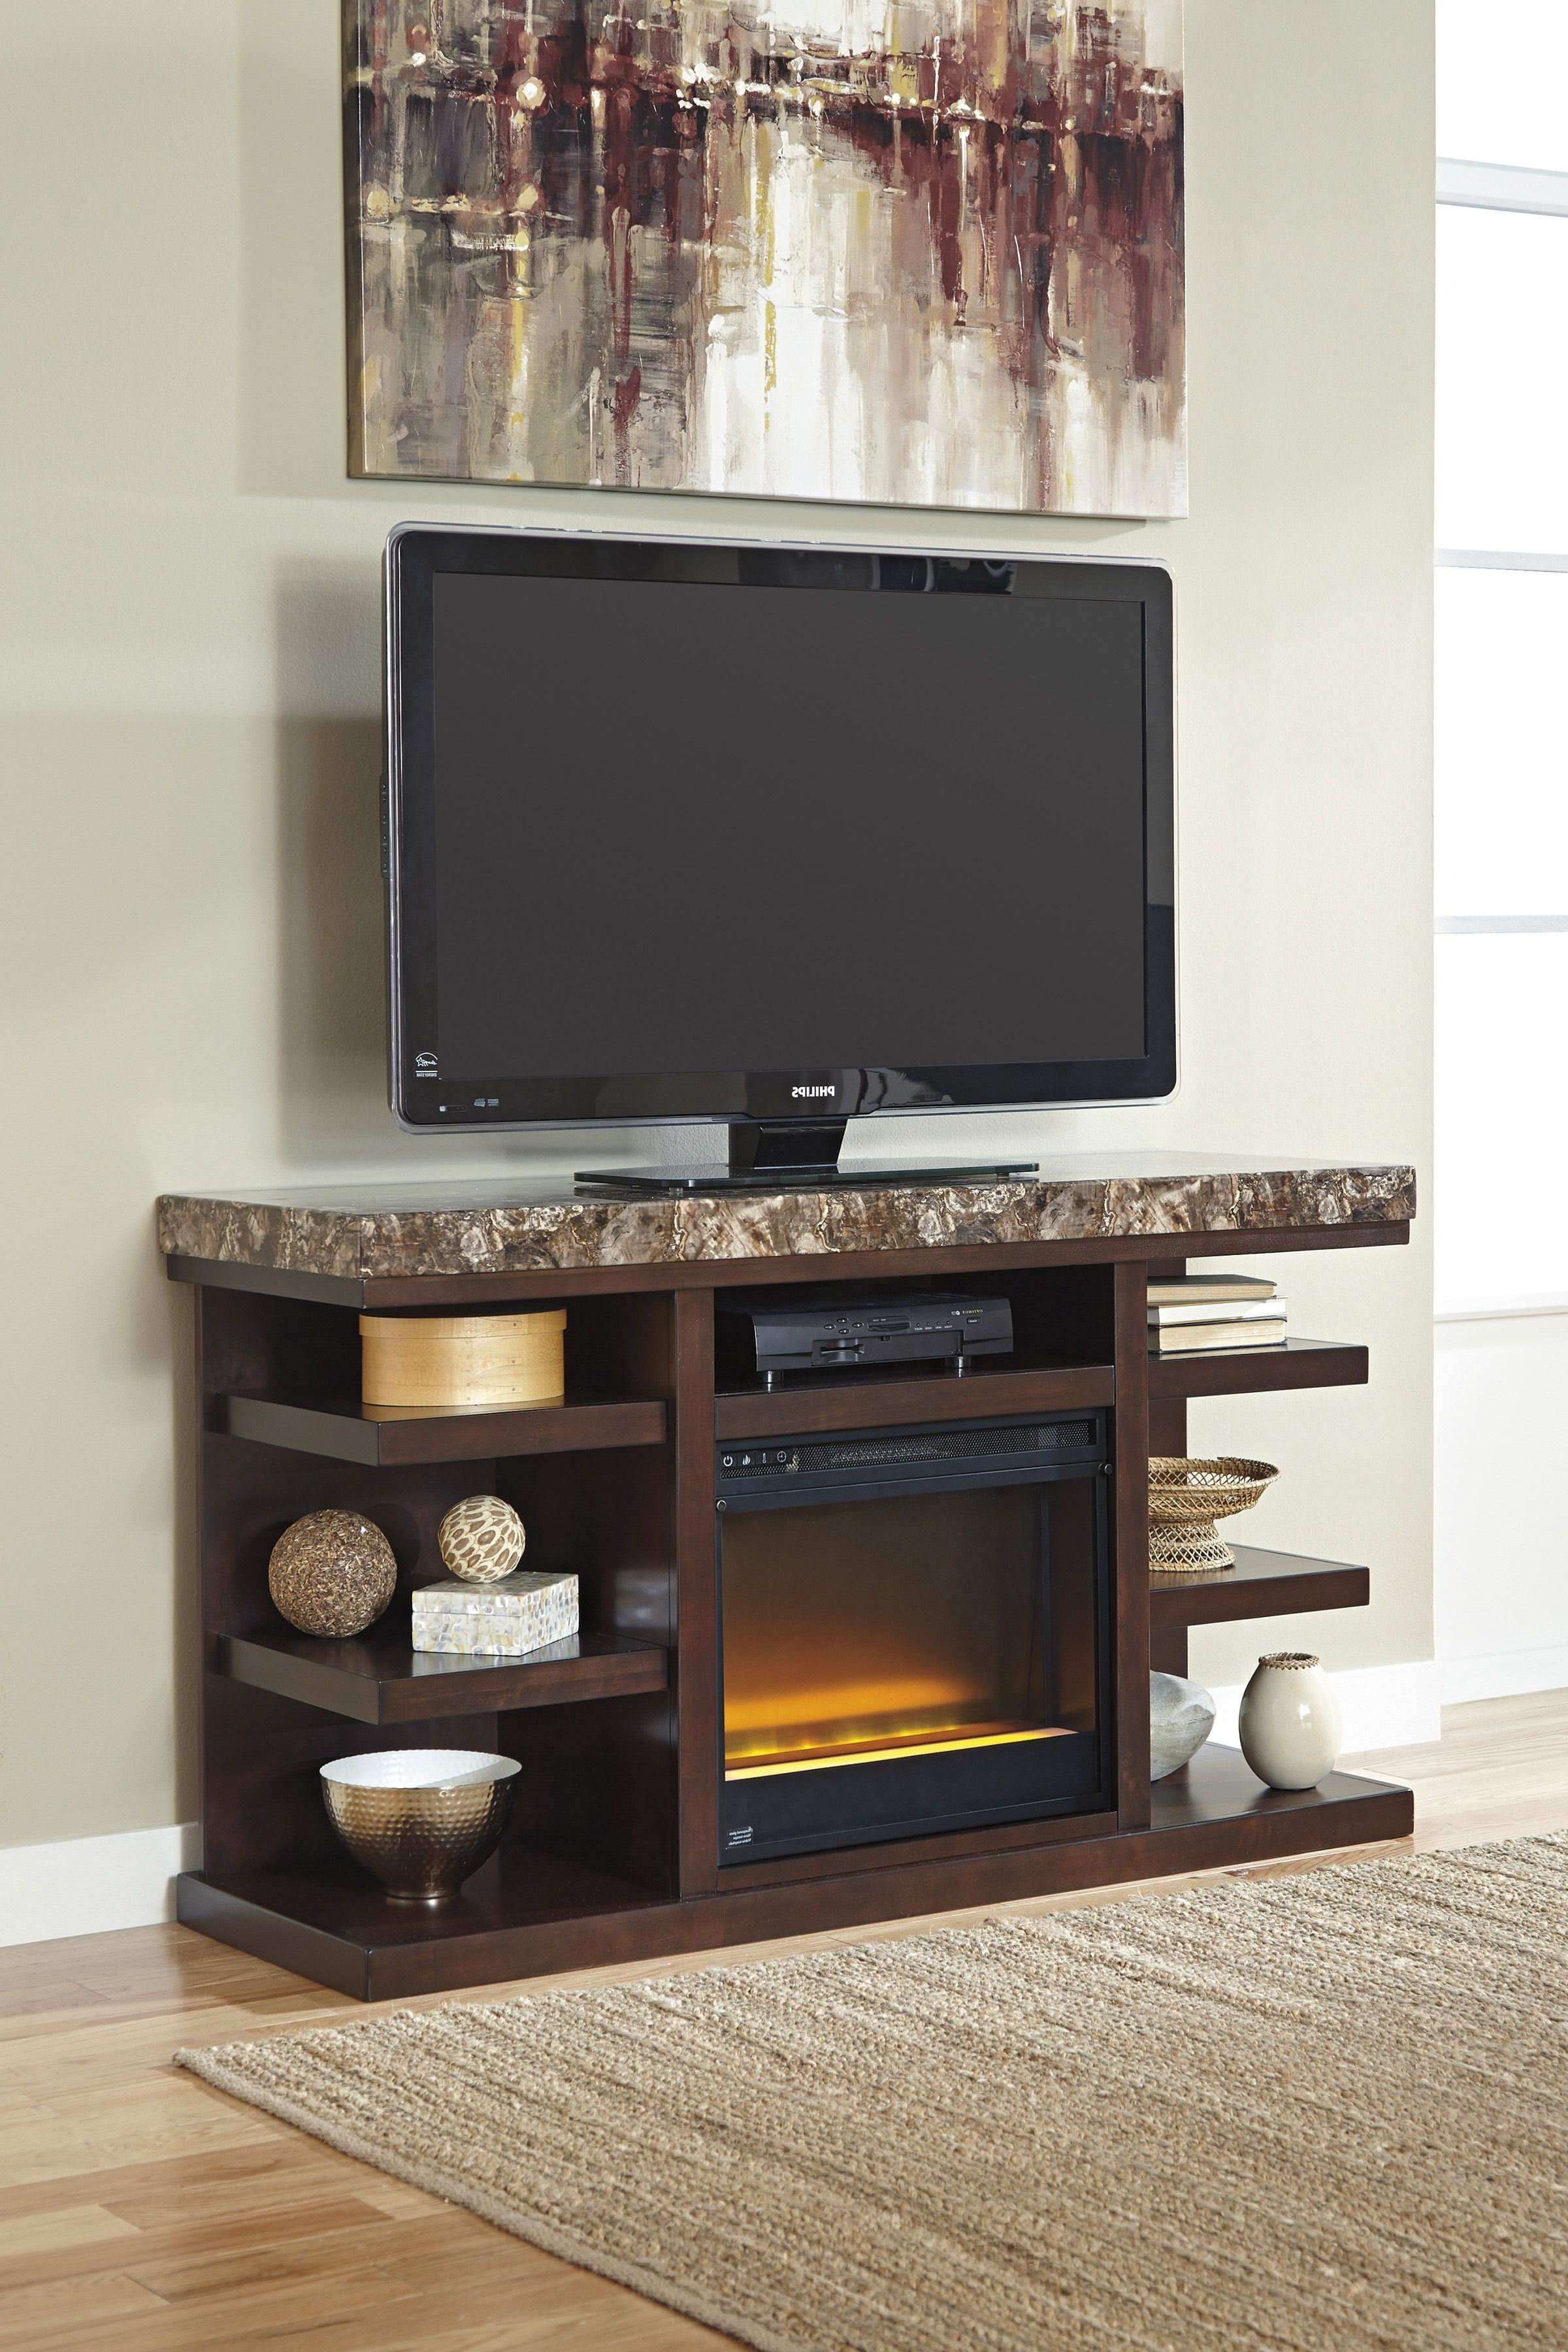 Dark Brown Lg Tv Stand With Glass/stone Fireplace | Projects To Try Intended For Edwin Black 64 Inch Tv Stands (Gallery 1 of 20)